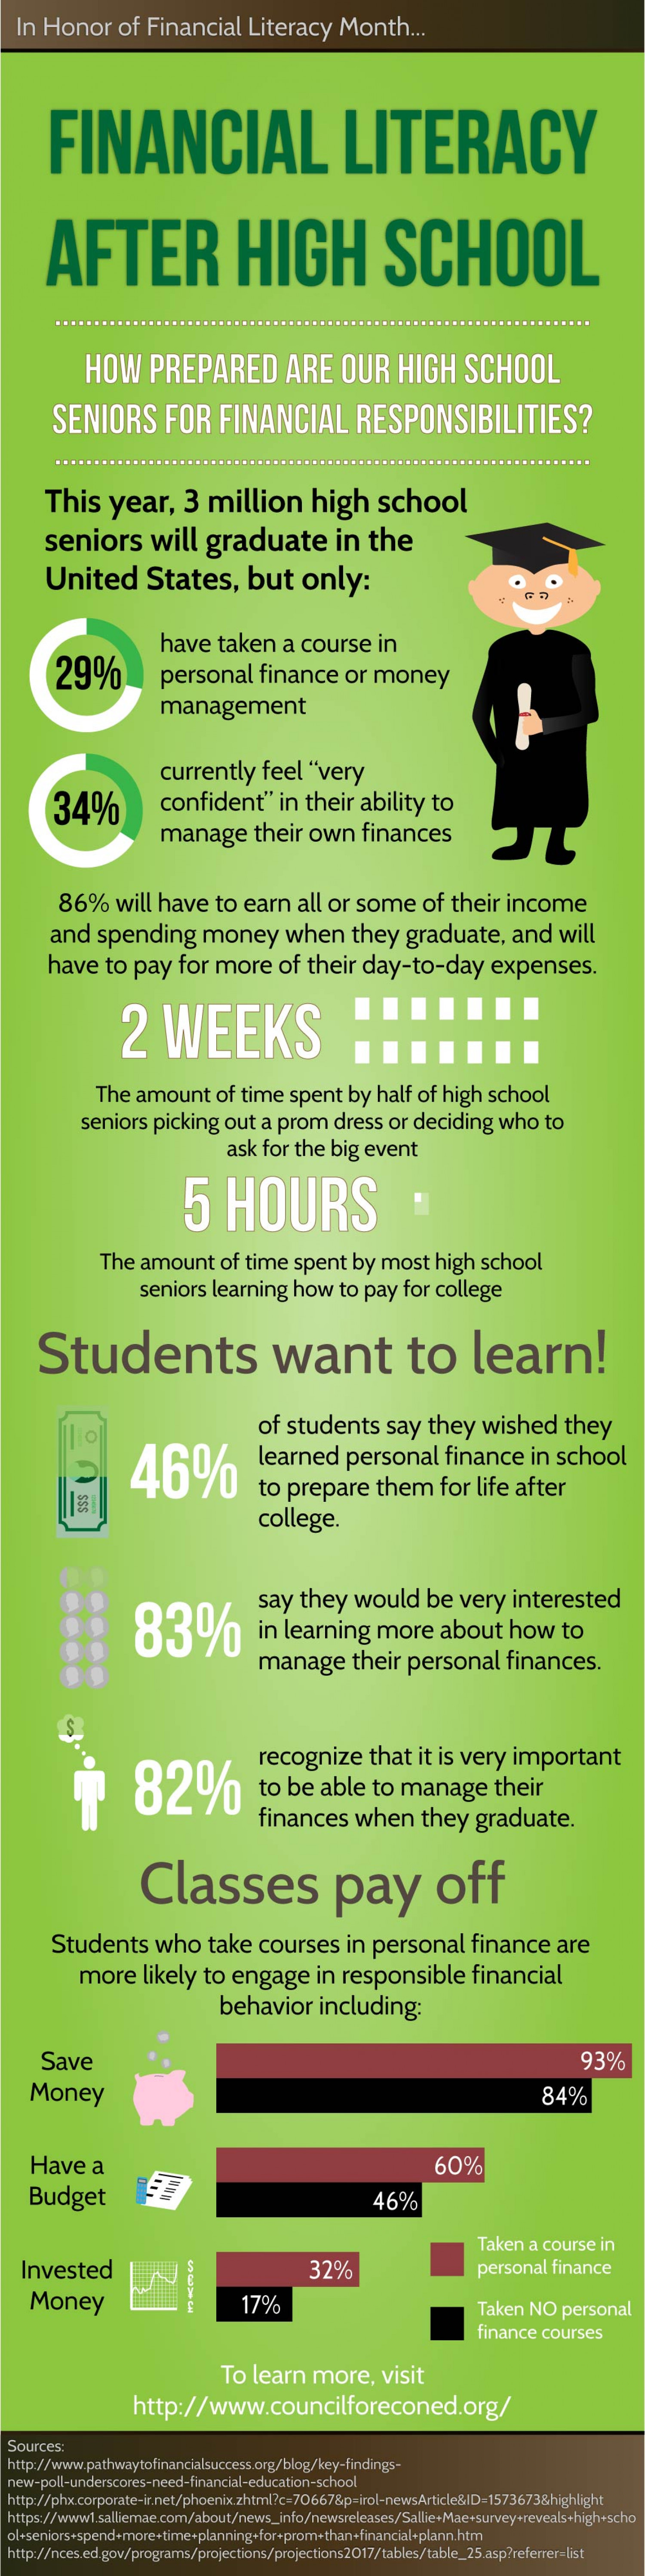 Financial Literacy After High School Infographic